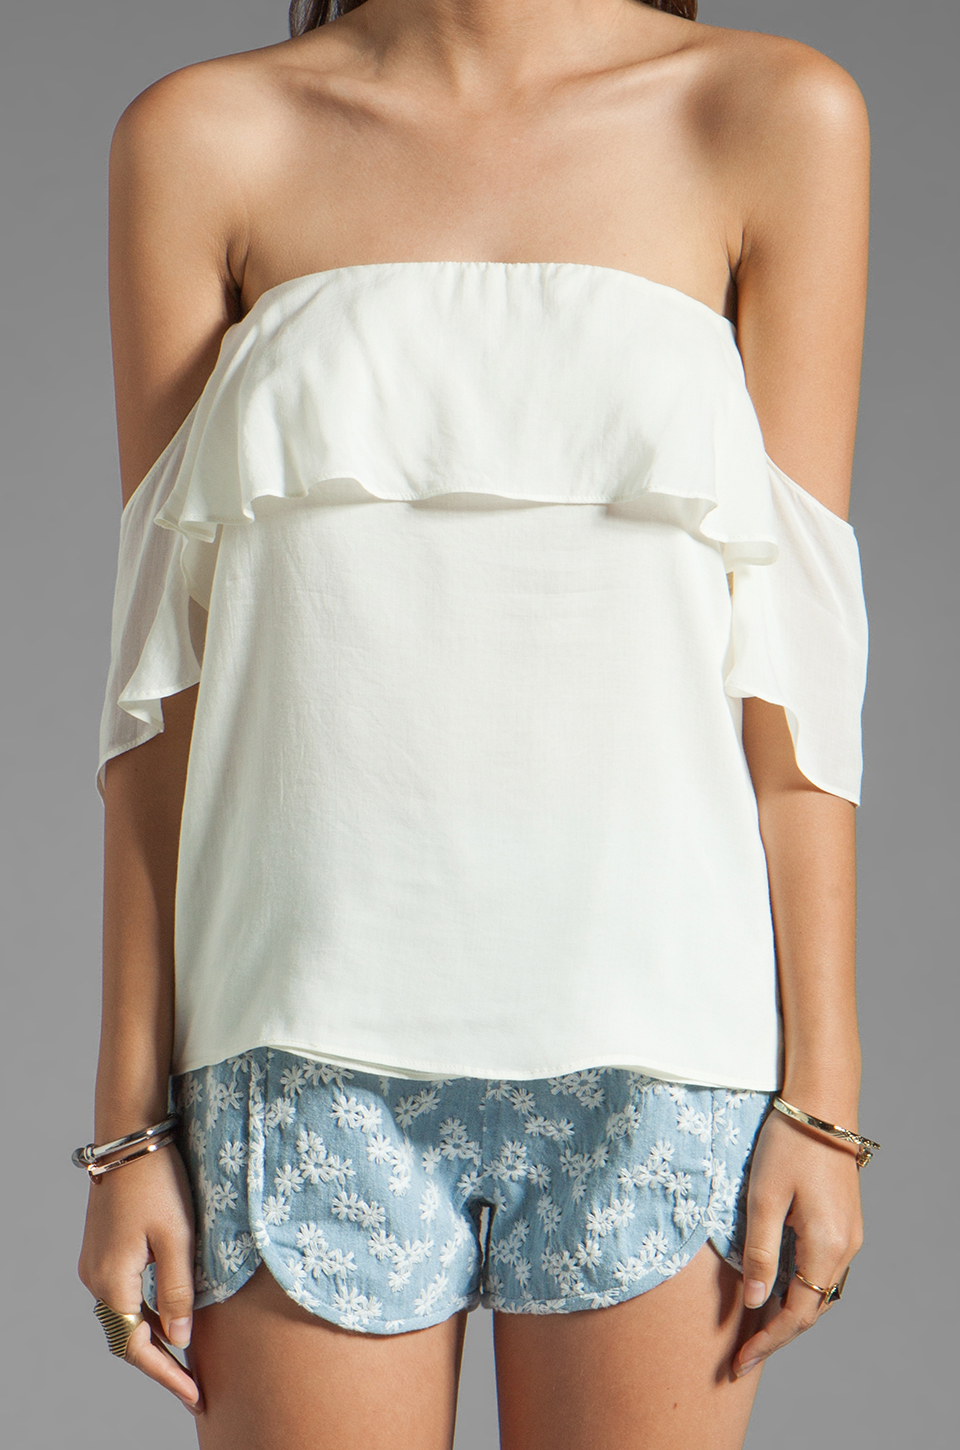 Boulee Emily Top in White